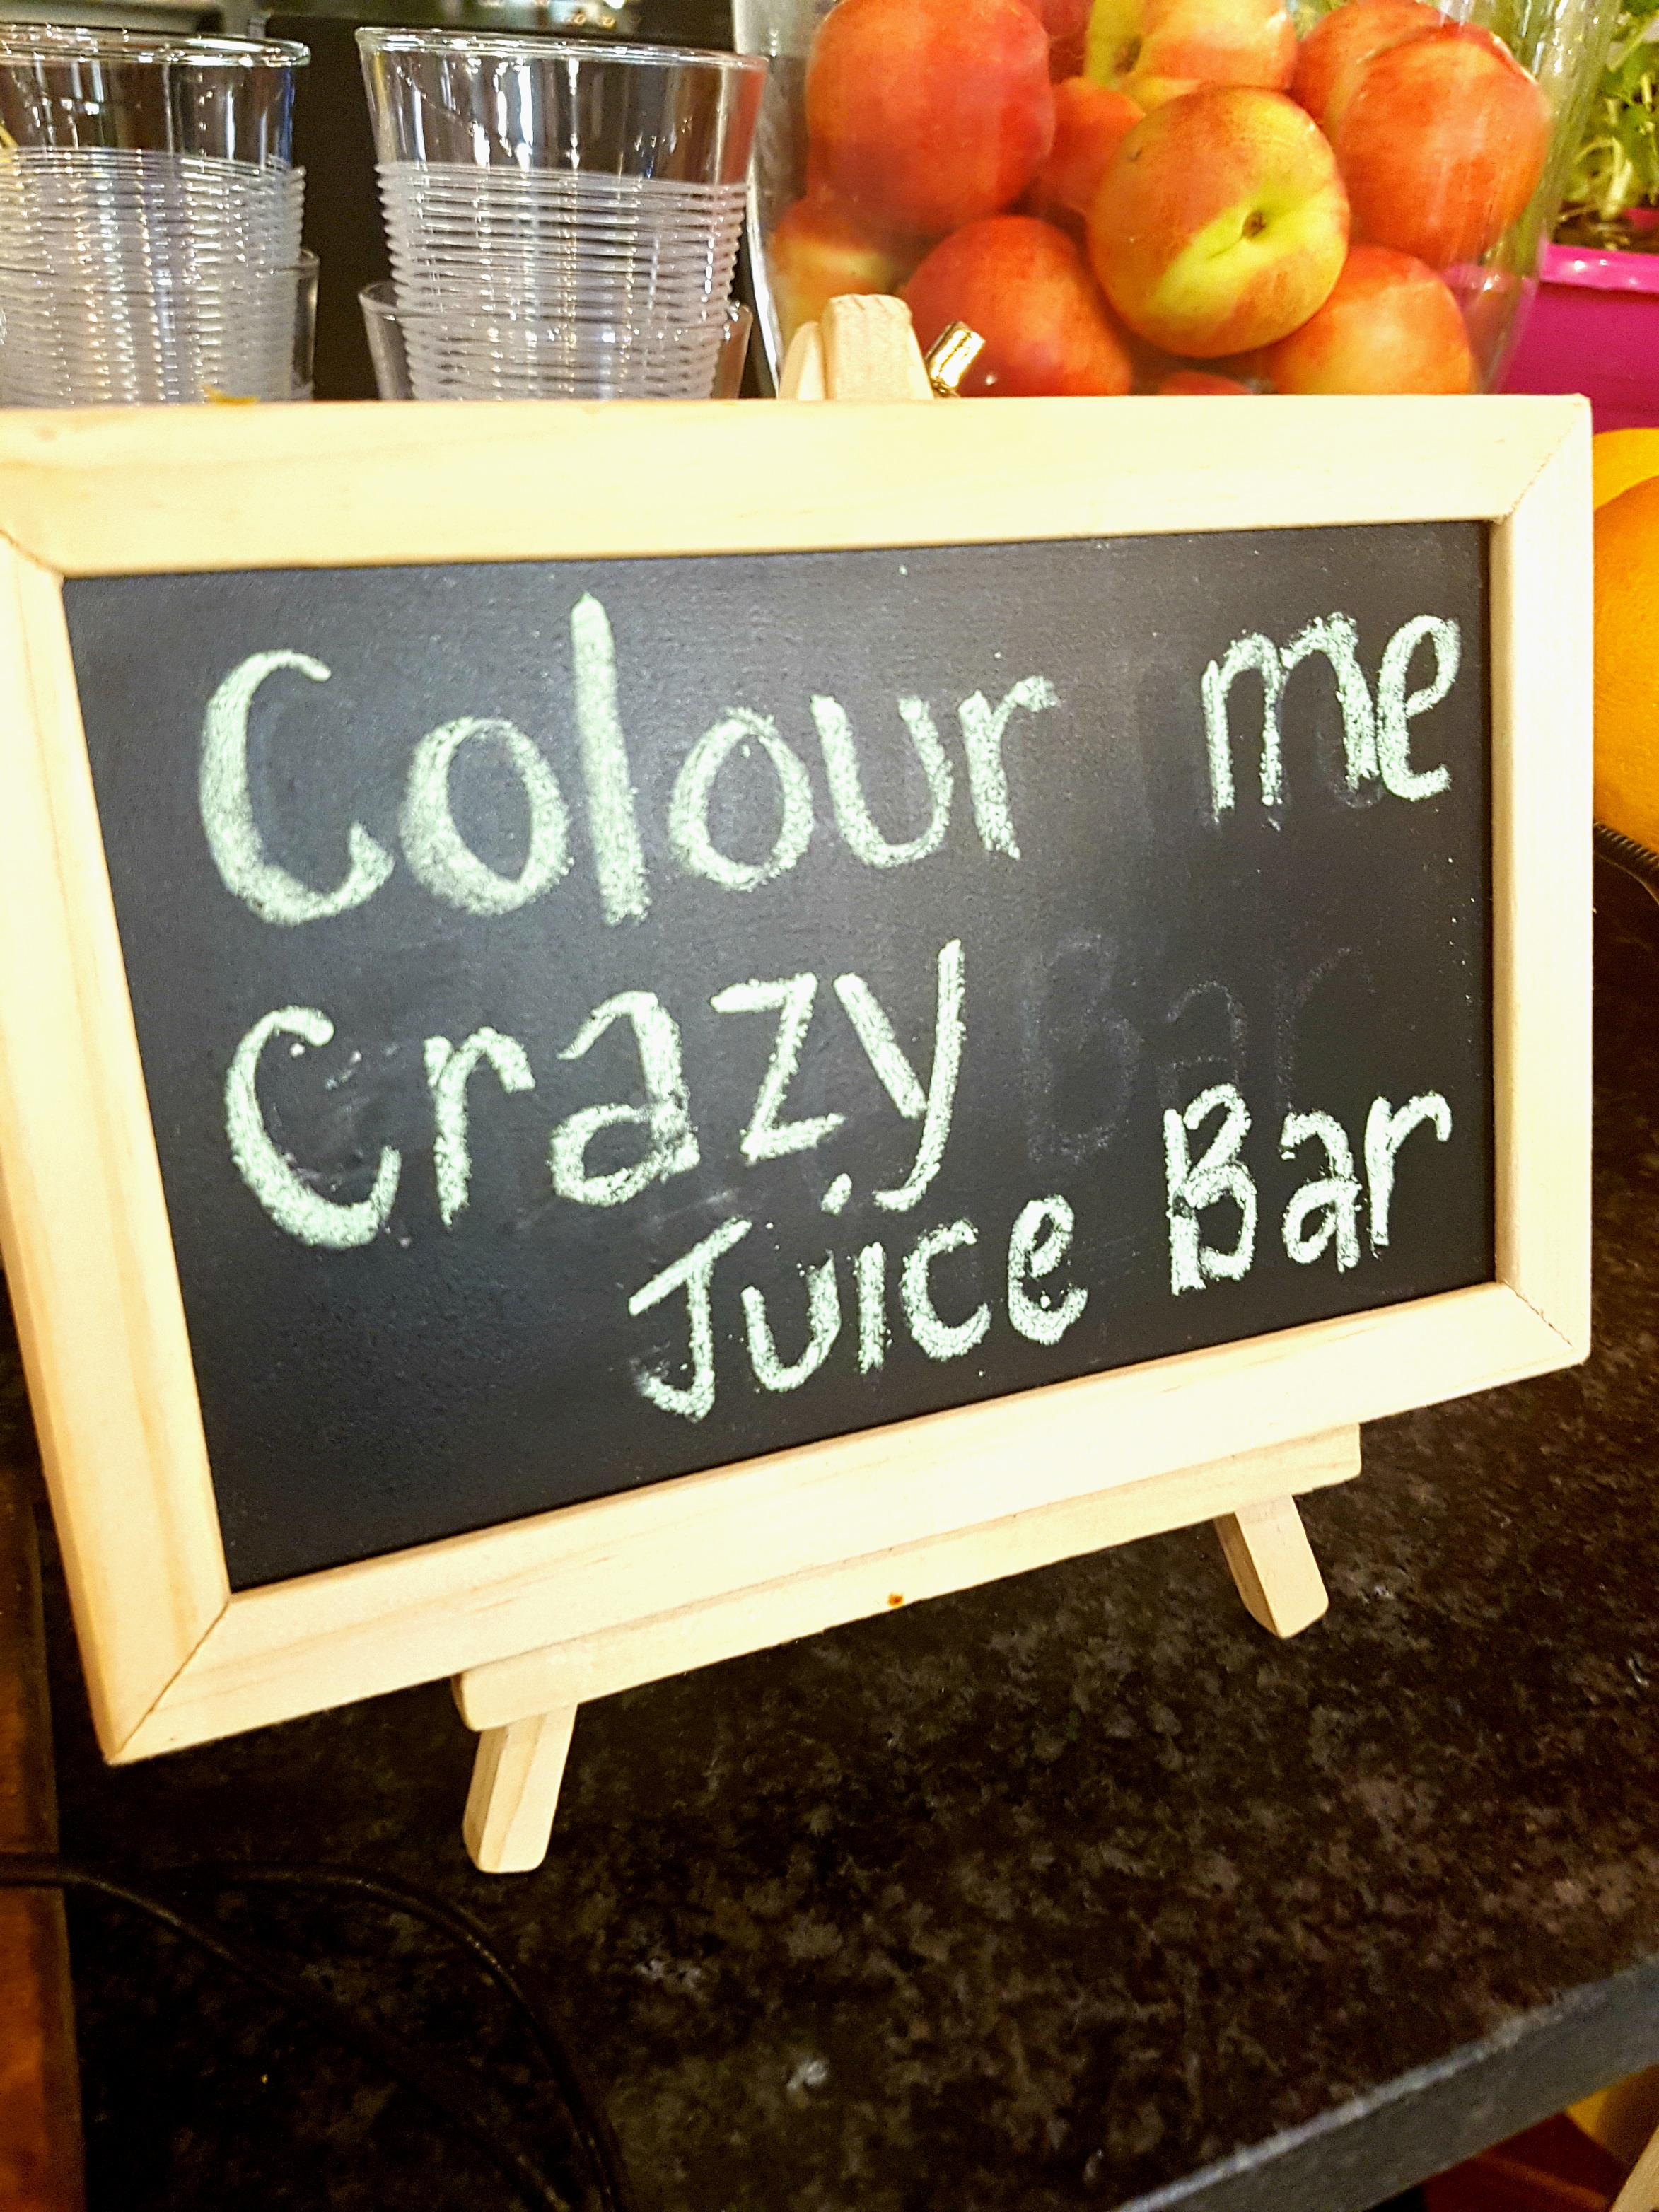 color-me-crazy-juice-bar_google-africa_jozi-with-google-2016